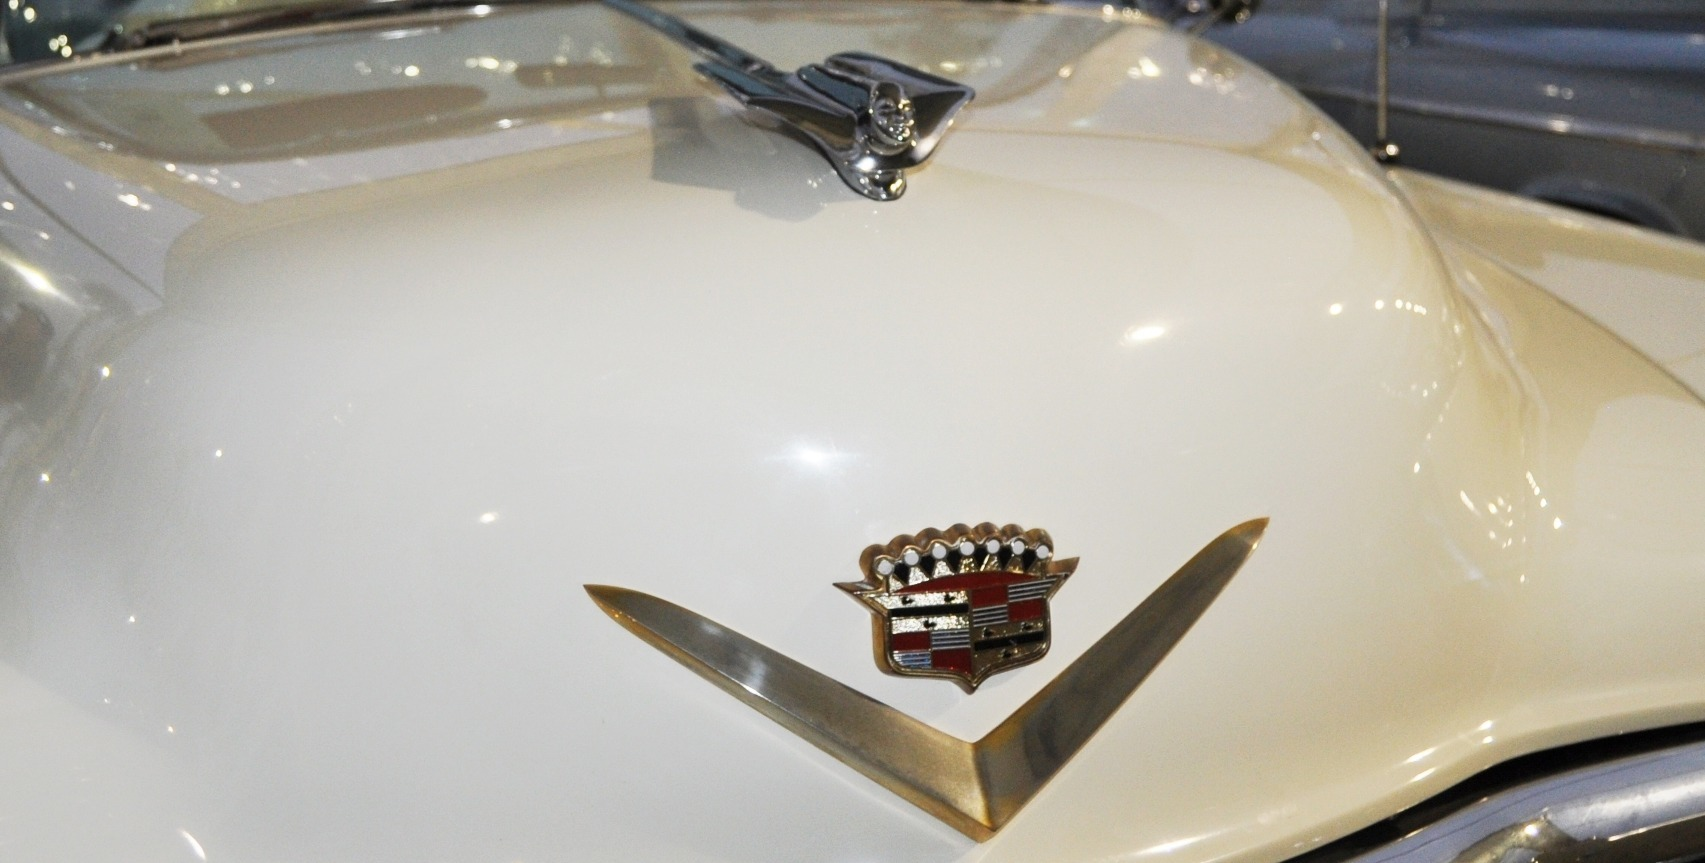 Coolest Vintage Hood Ornaments -- RM Auctions Amelia Island 2014 -- Pierce-Arrow, Cadillac, Stutz, Chrysler, Ford, Aston-Martin, Bentley and More 25